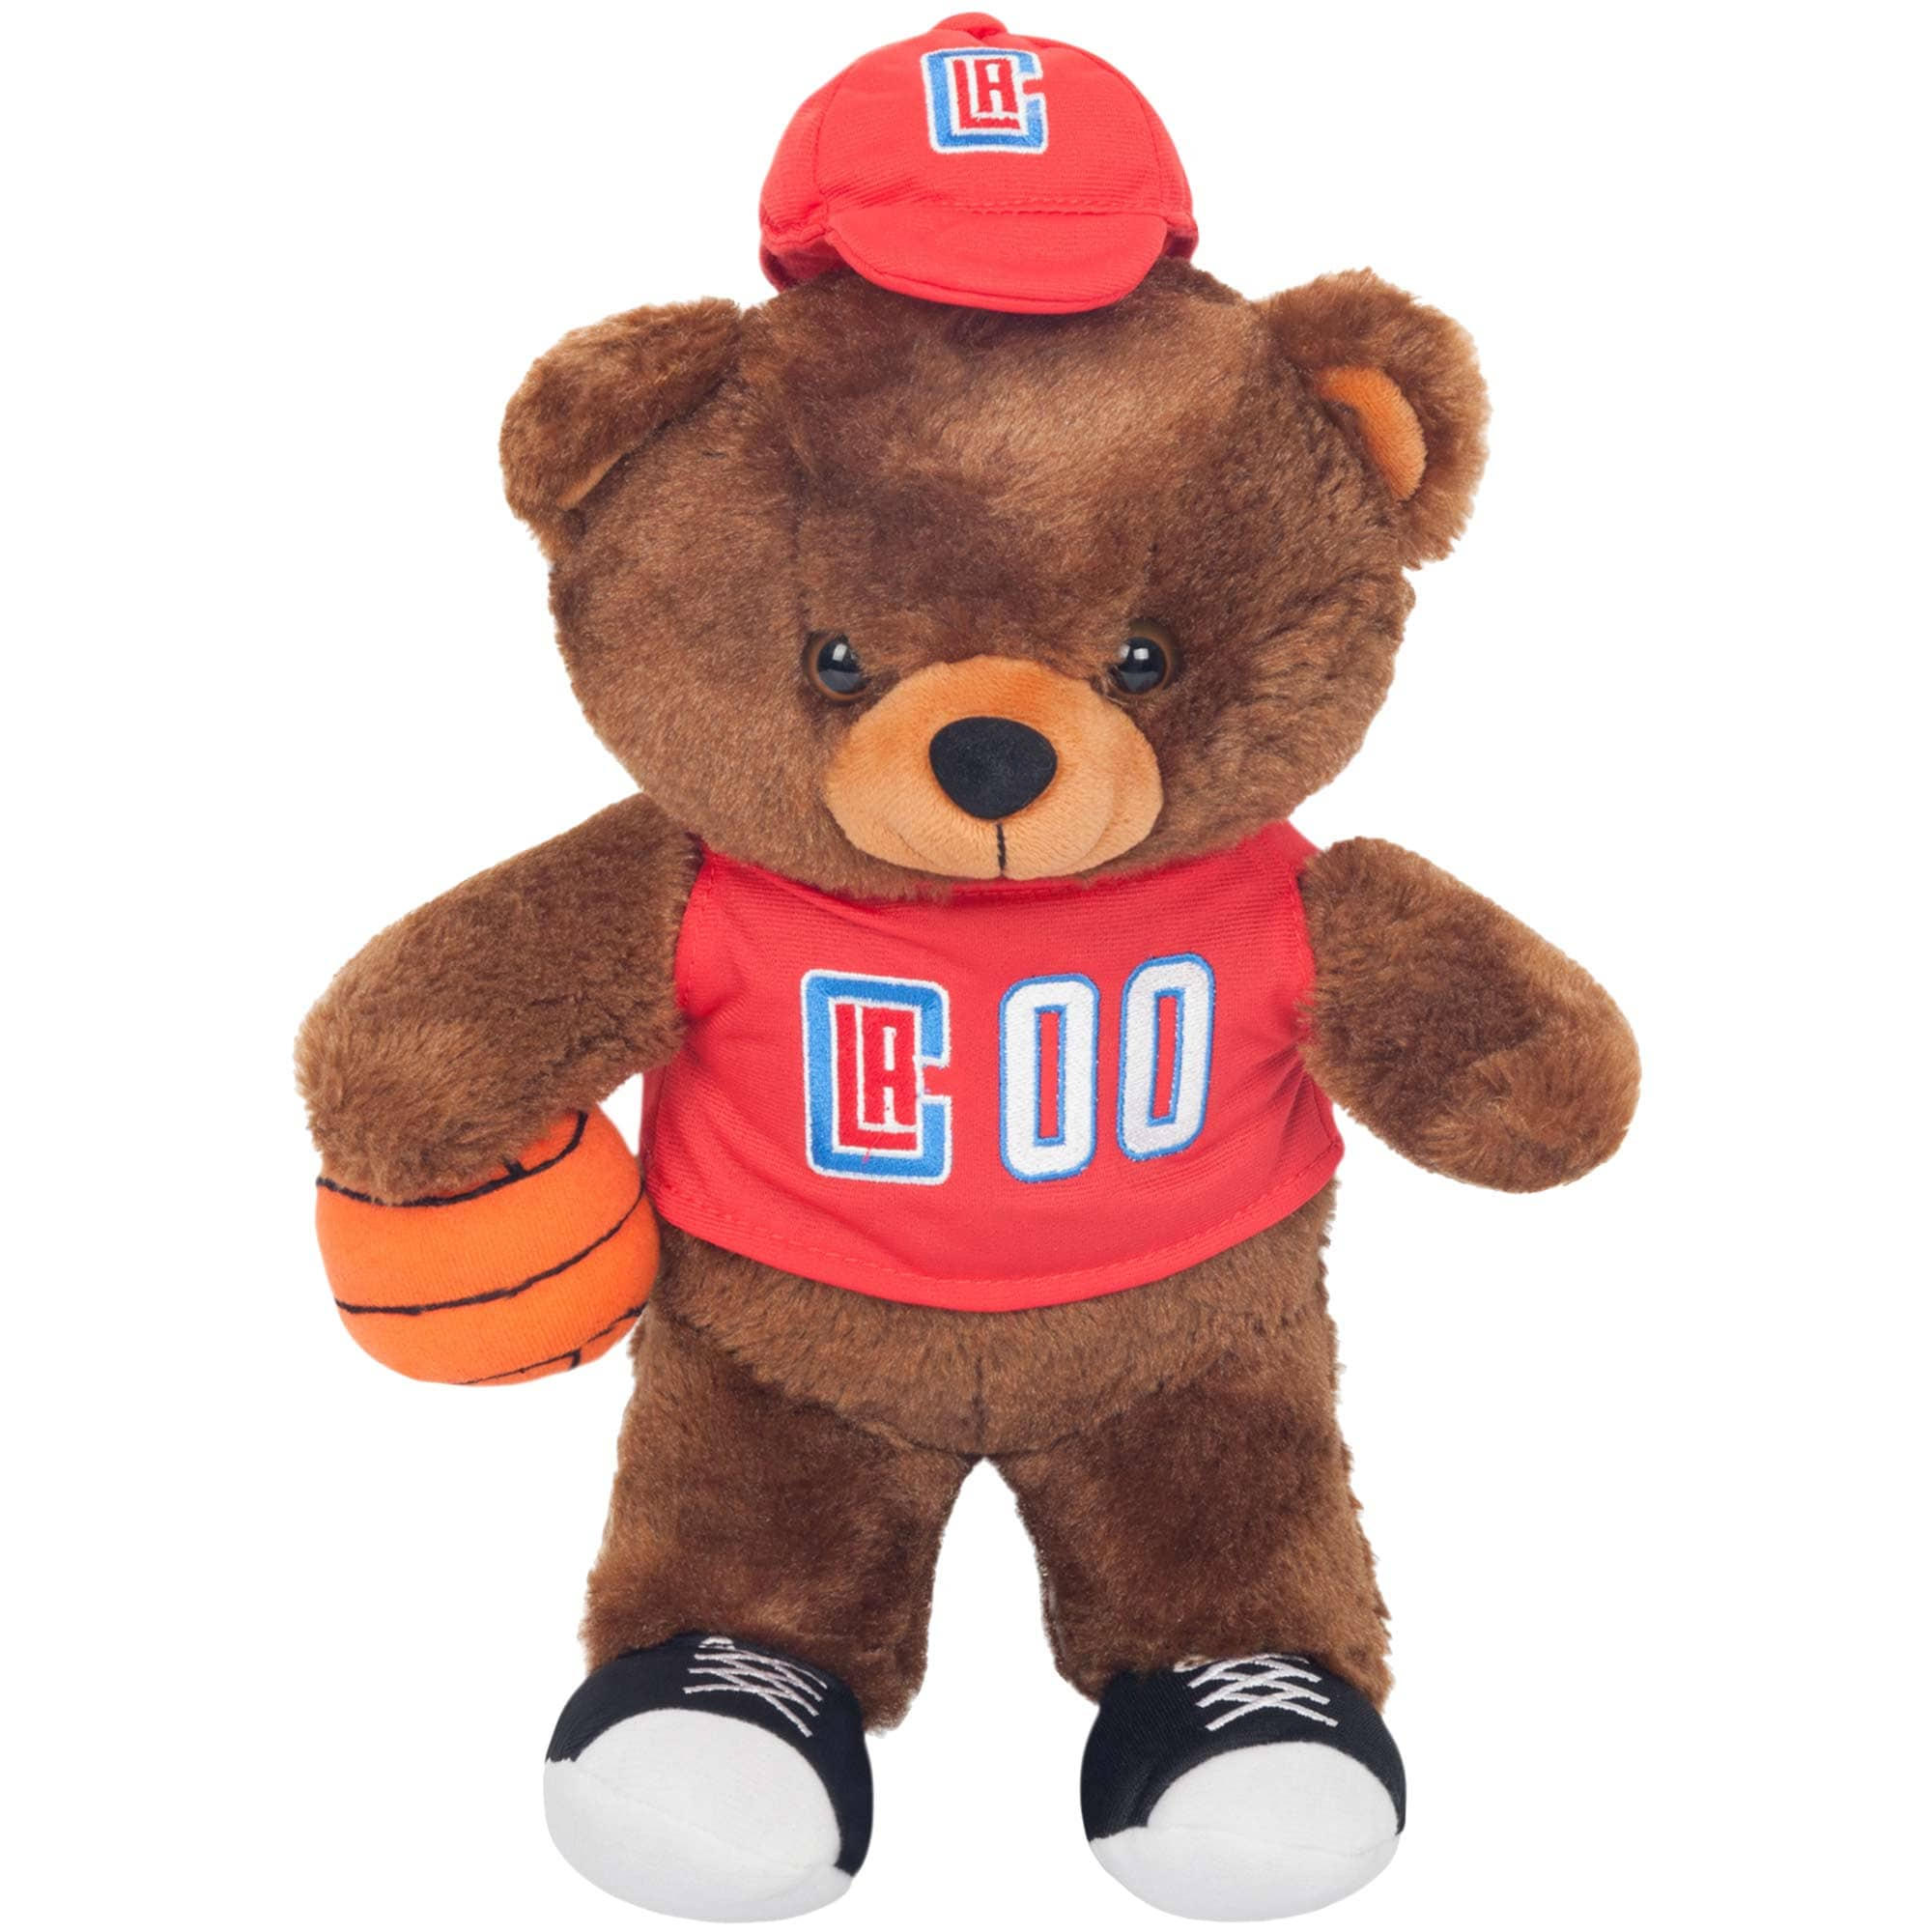 LA Clippers Locker Room Buddy Dress Me Plush Bear Kit